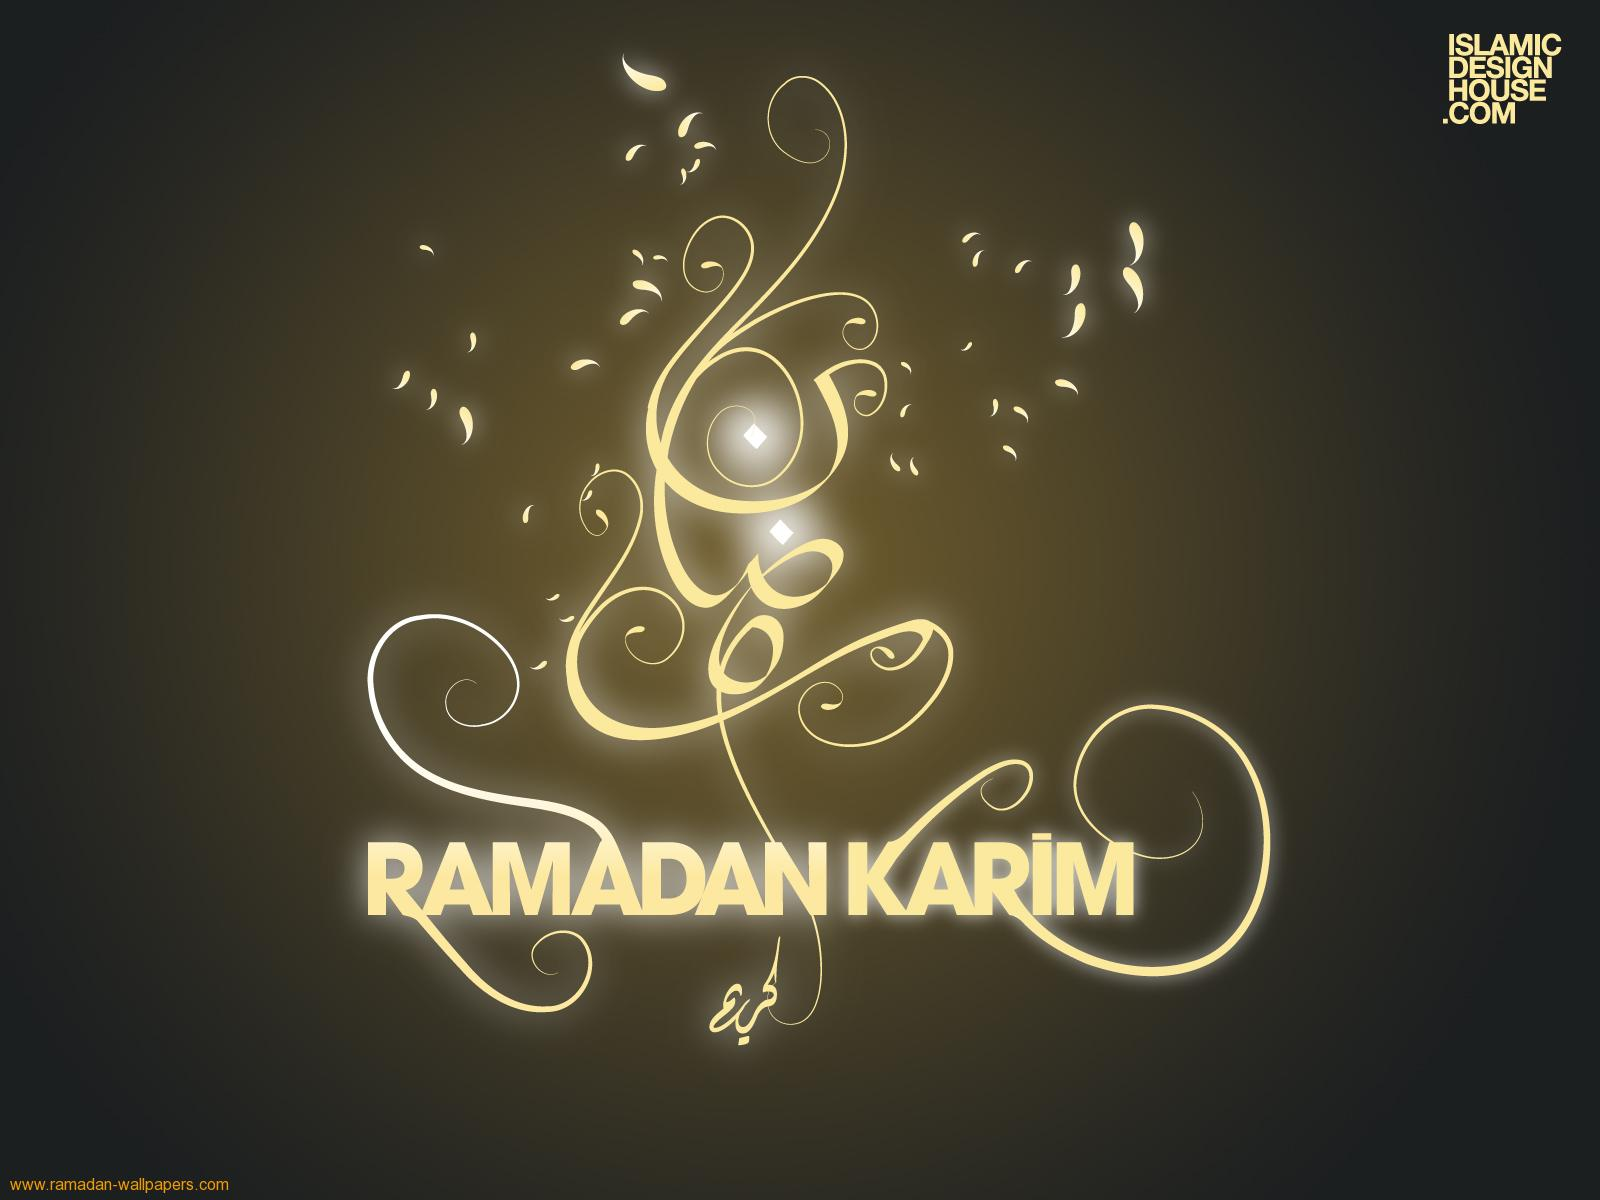 Ramadan 2018 wallpapers